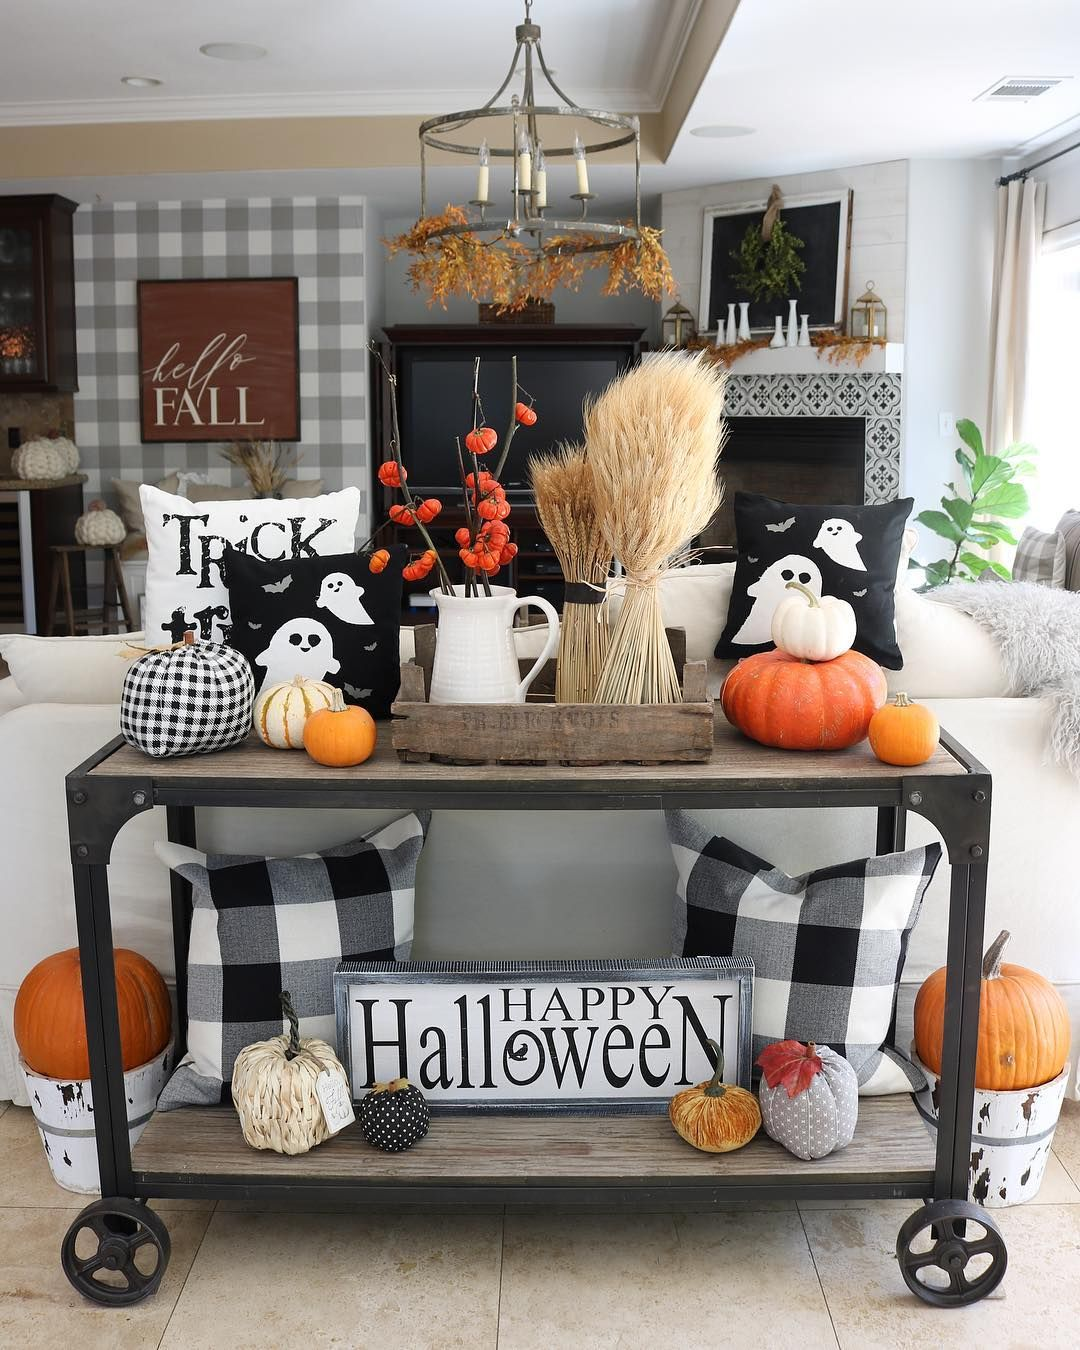 26 DIY Halloween Decorations That Are Cheap and Easy To